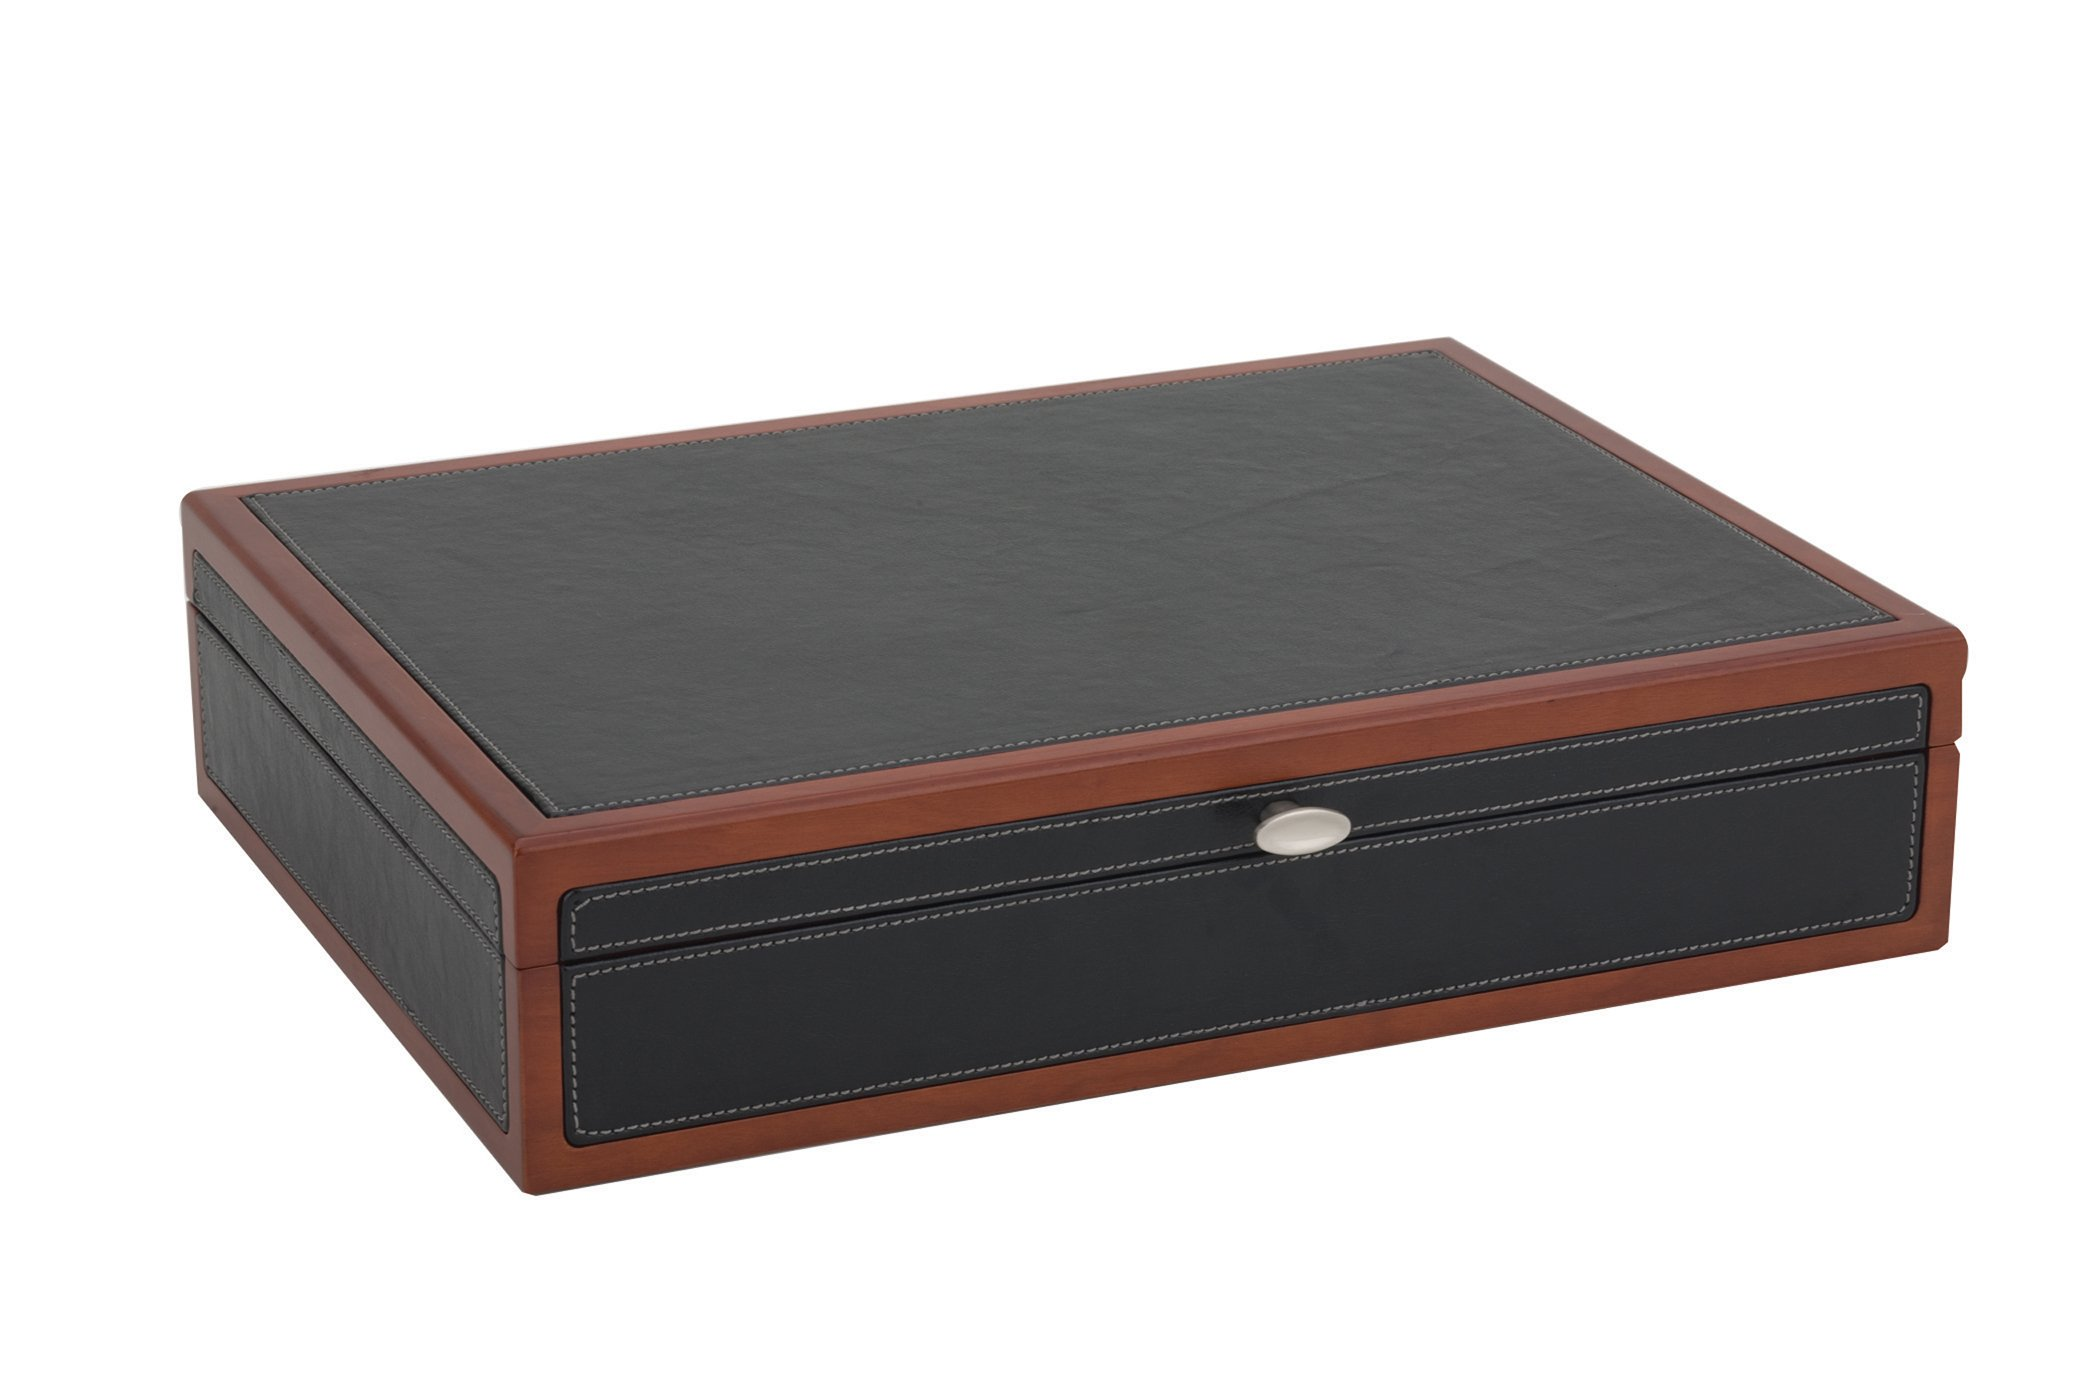 Reed & Barton Adams Flatware Chest, Black Leather with Cherry Trim